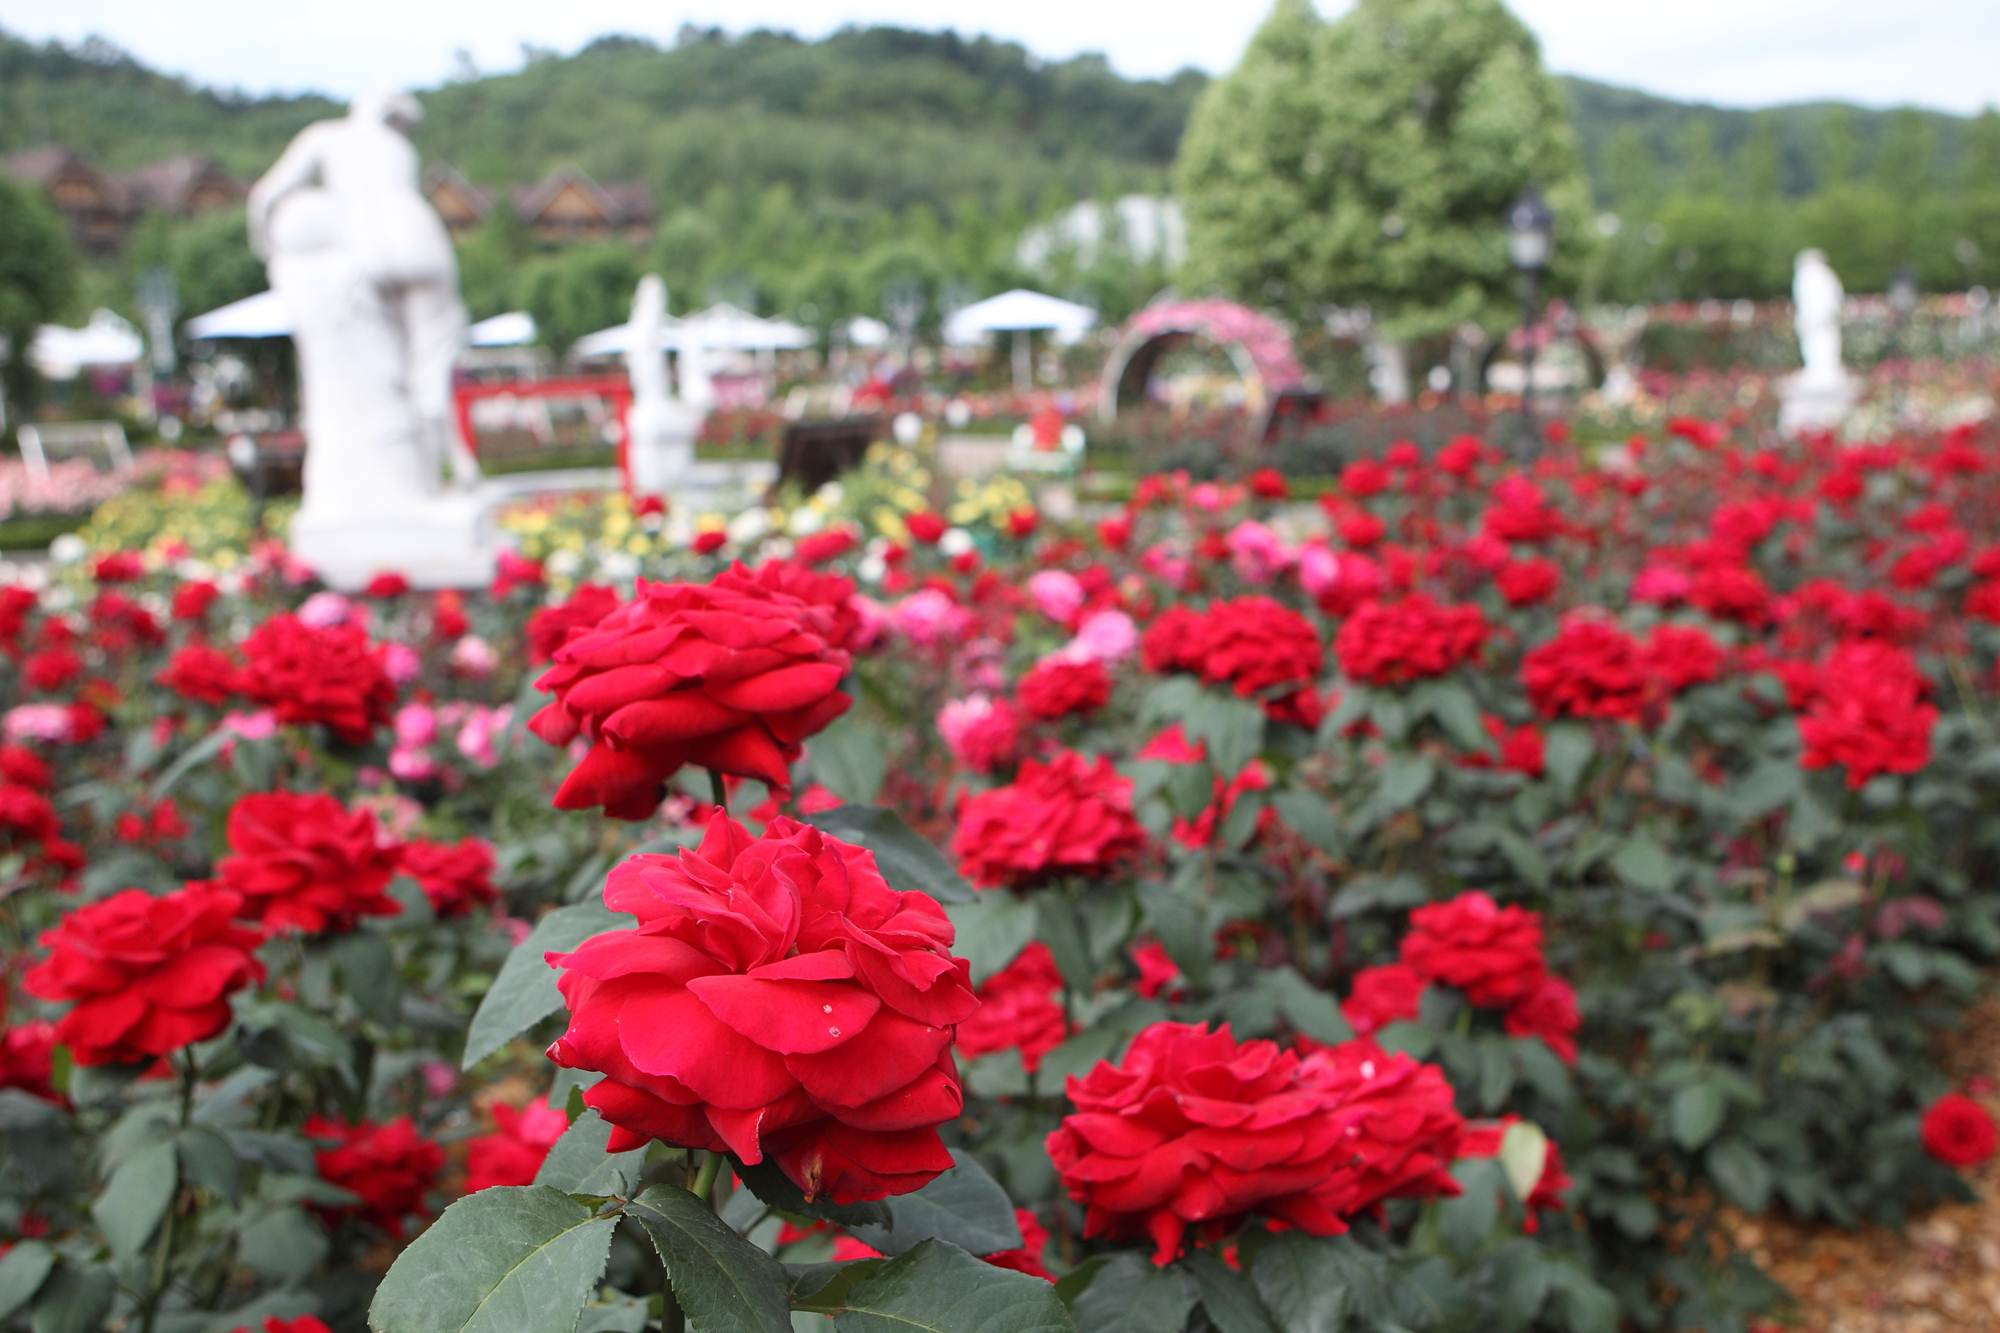 A field of red roses bloom among the attractions of Everland, operated by Samsung C&T Resort Group and located in Yongin, Gyeonggi Province, an hour southeast of Seoul, at its 35th annual Rose Festival that runs from May 17 to June 16 this year.